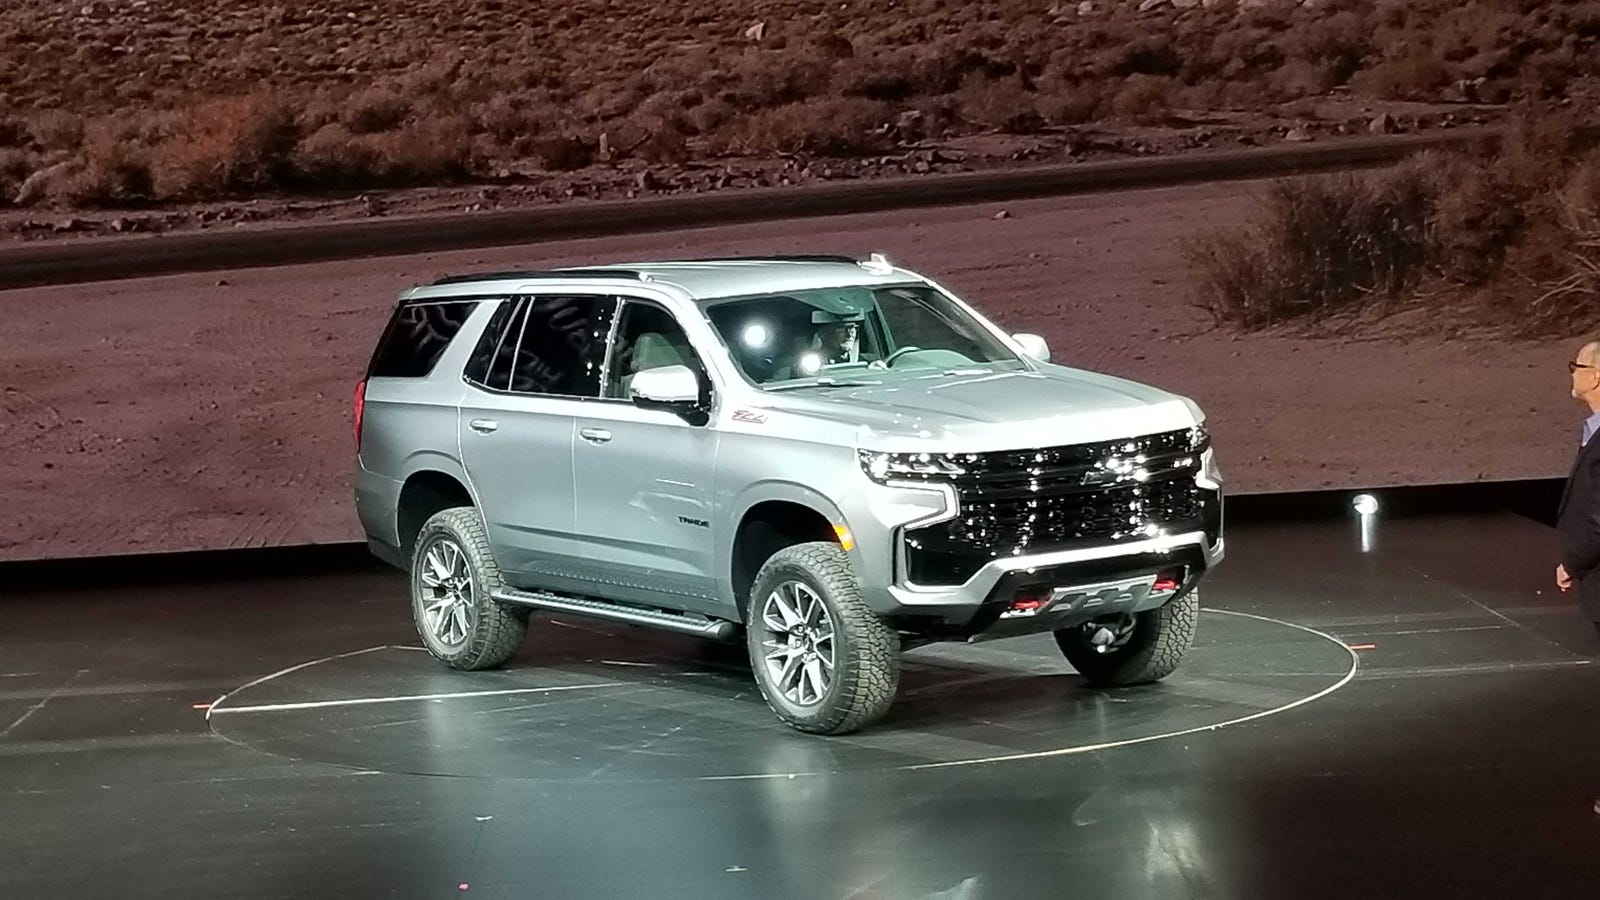 2021 chevrolet suburban and 2021 chevrolet tahoe  here they are - kcsr